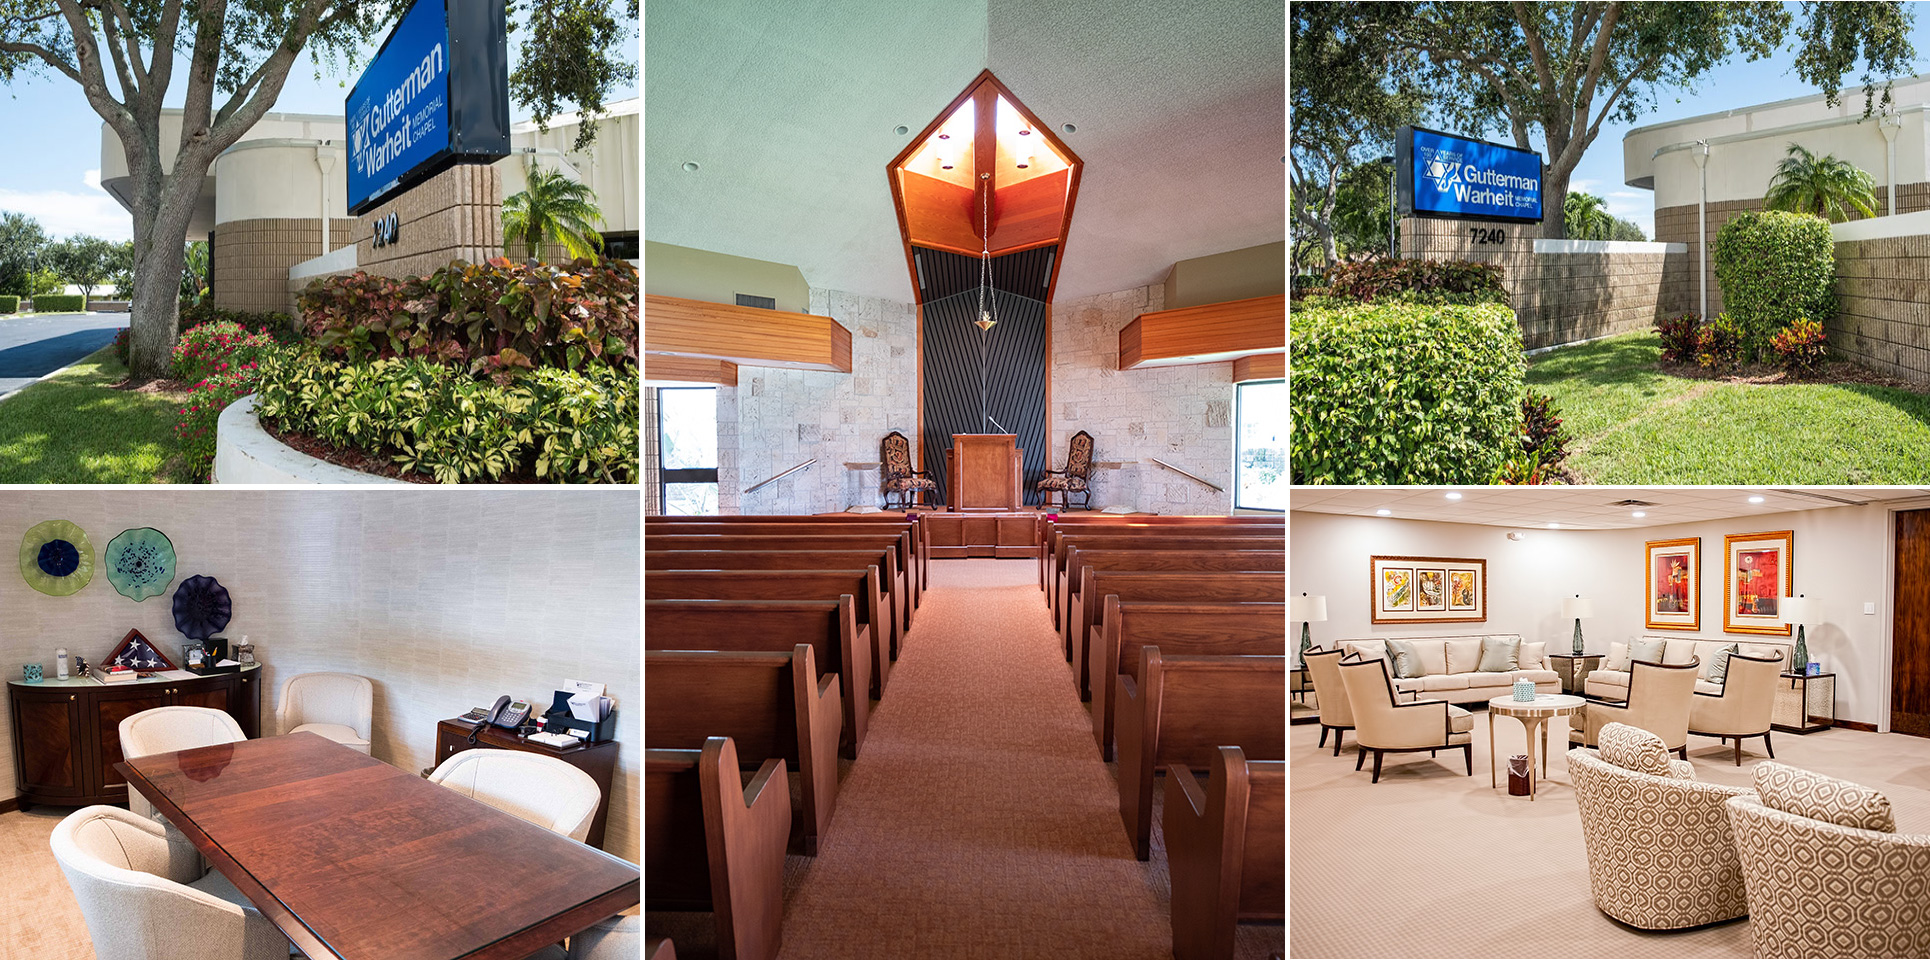 Gutterman-Warheit-Boca-Raton-building-chapel-conference-room-waiting-room